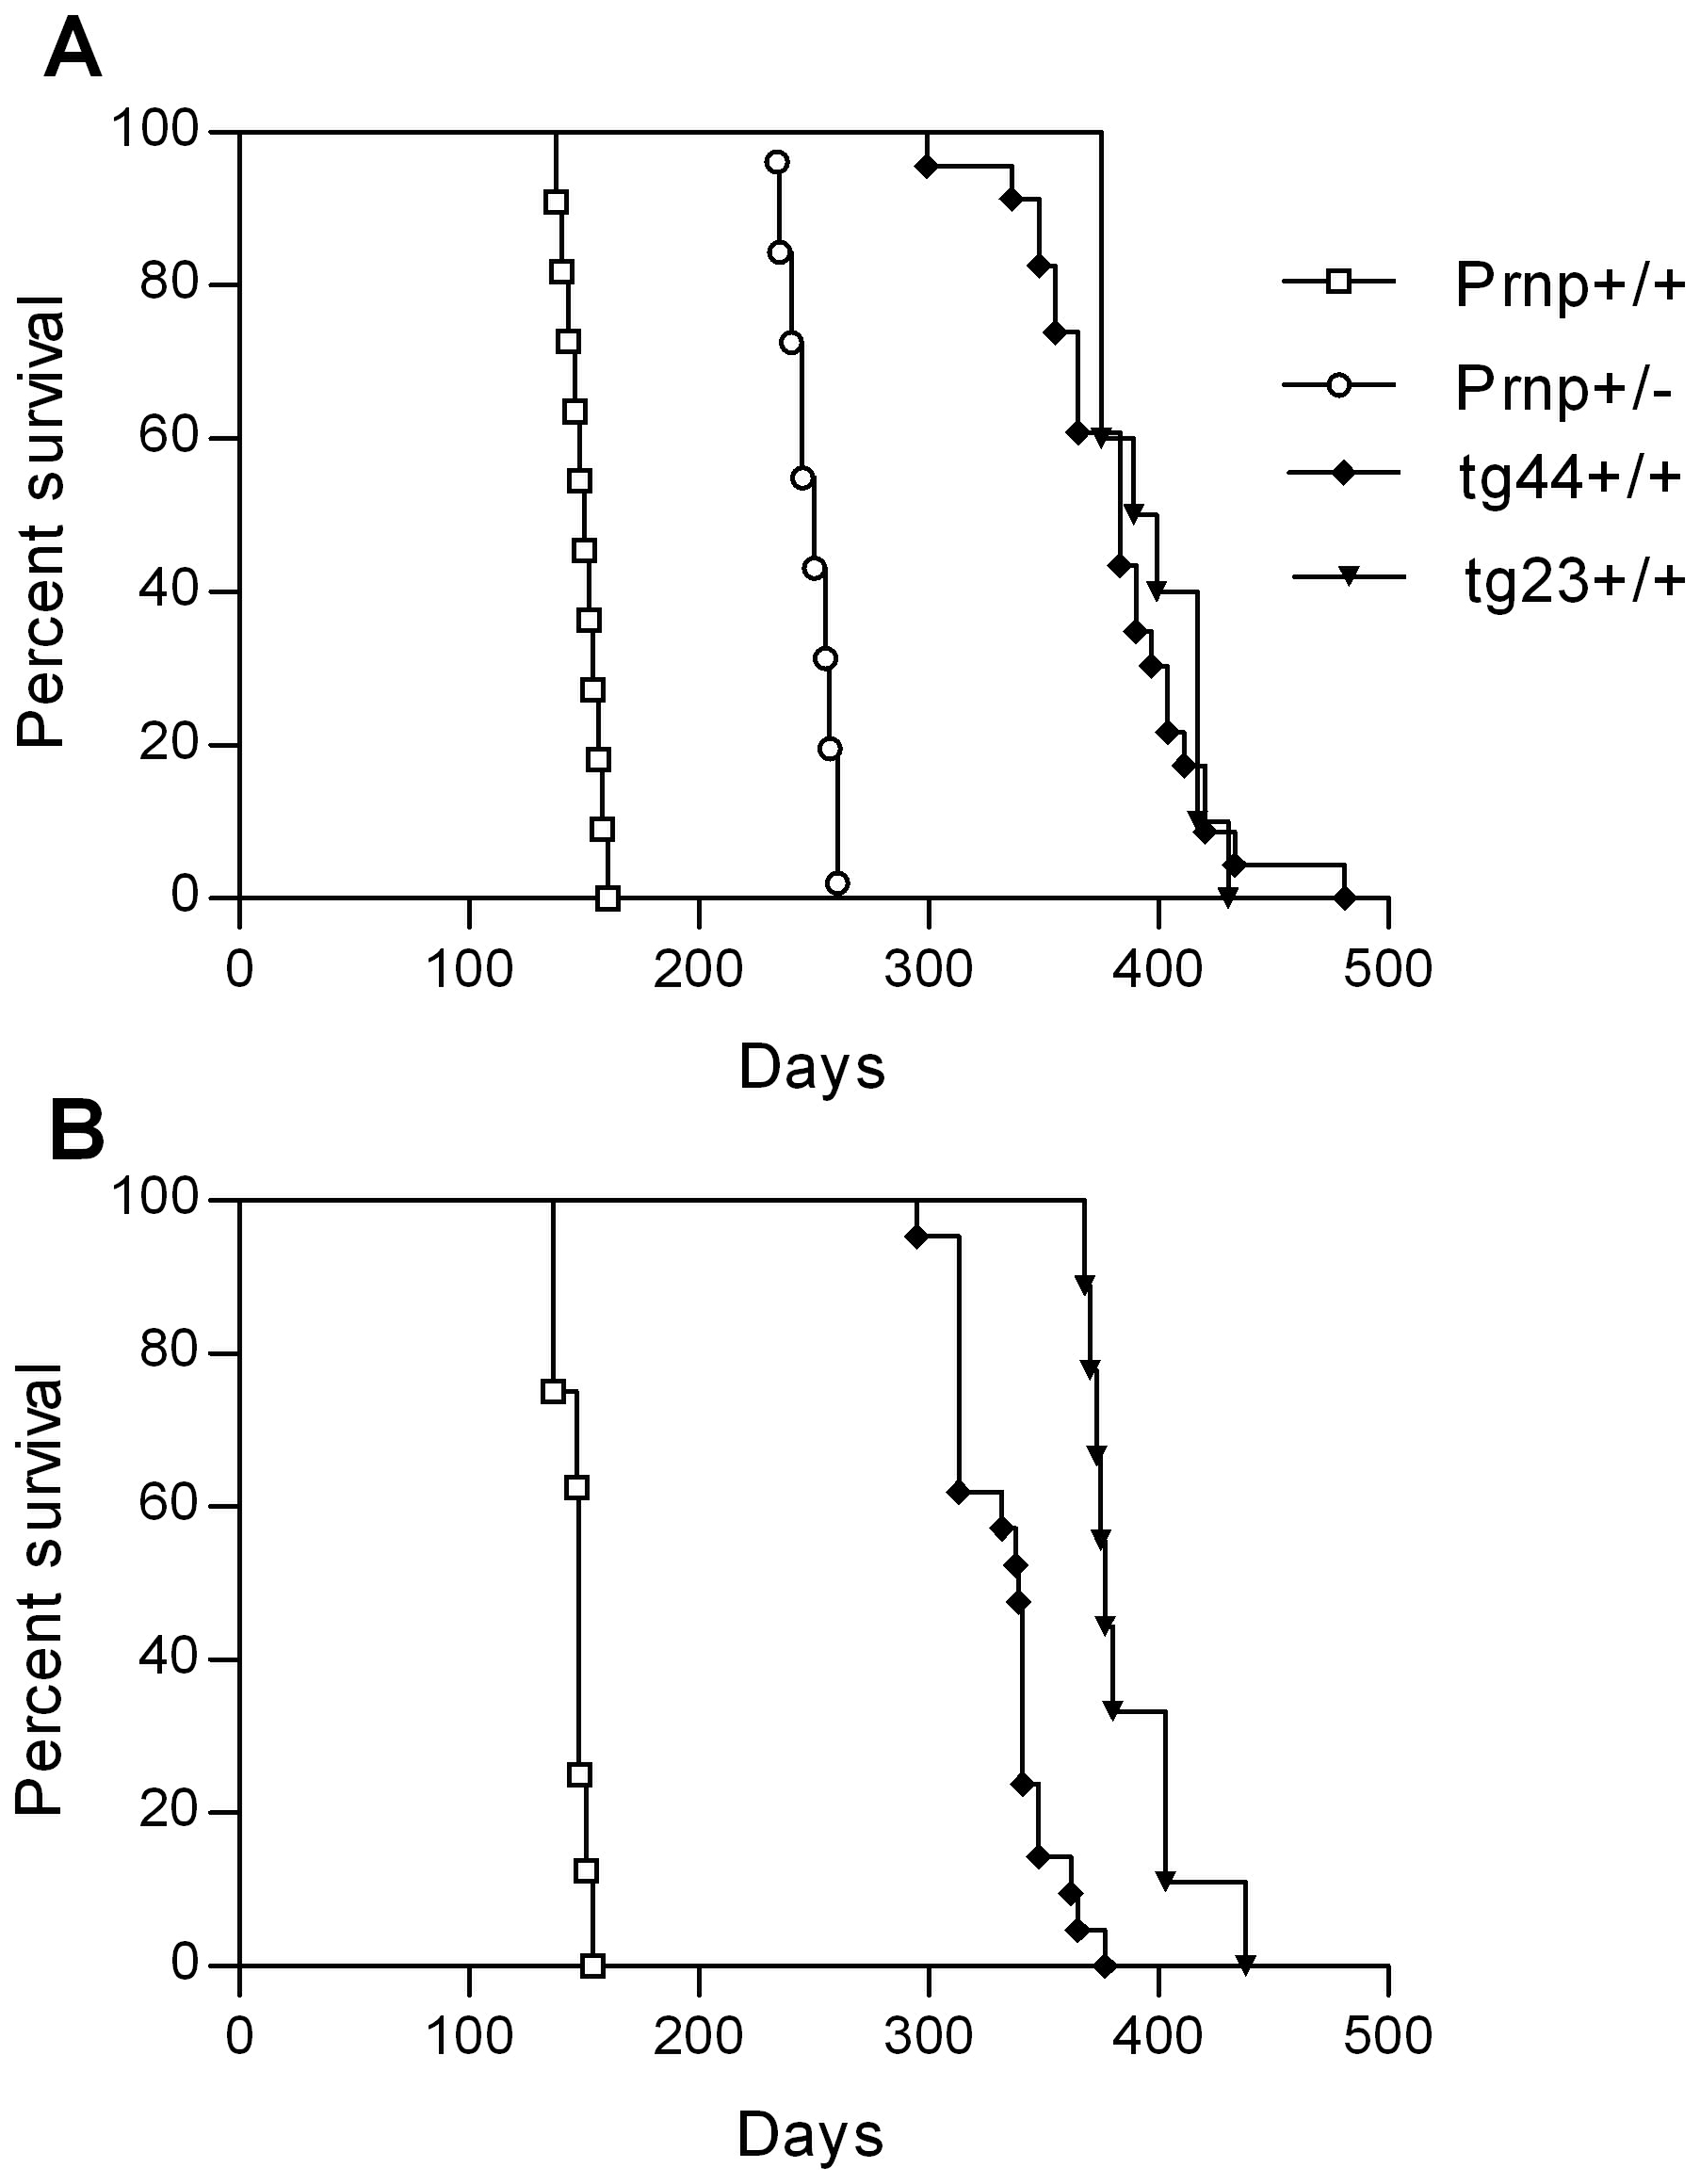 Survival curves for scrapie-infected mice.